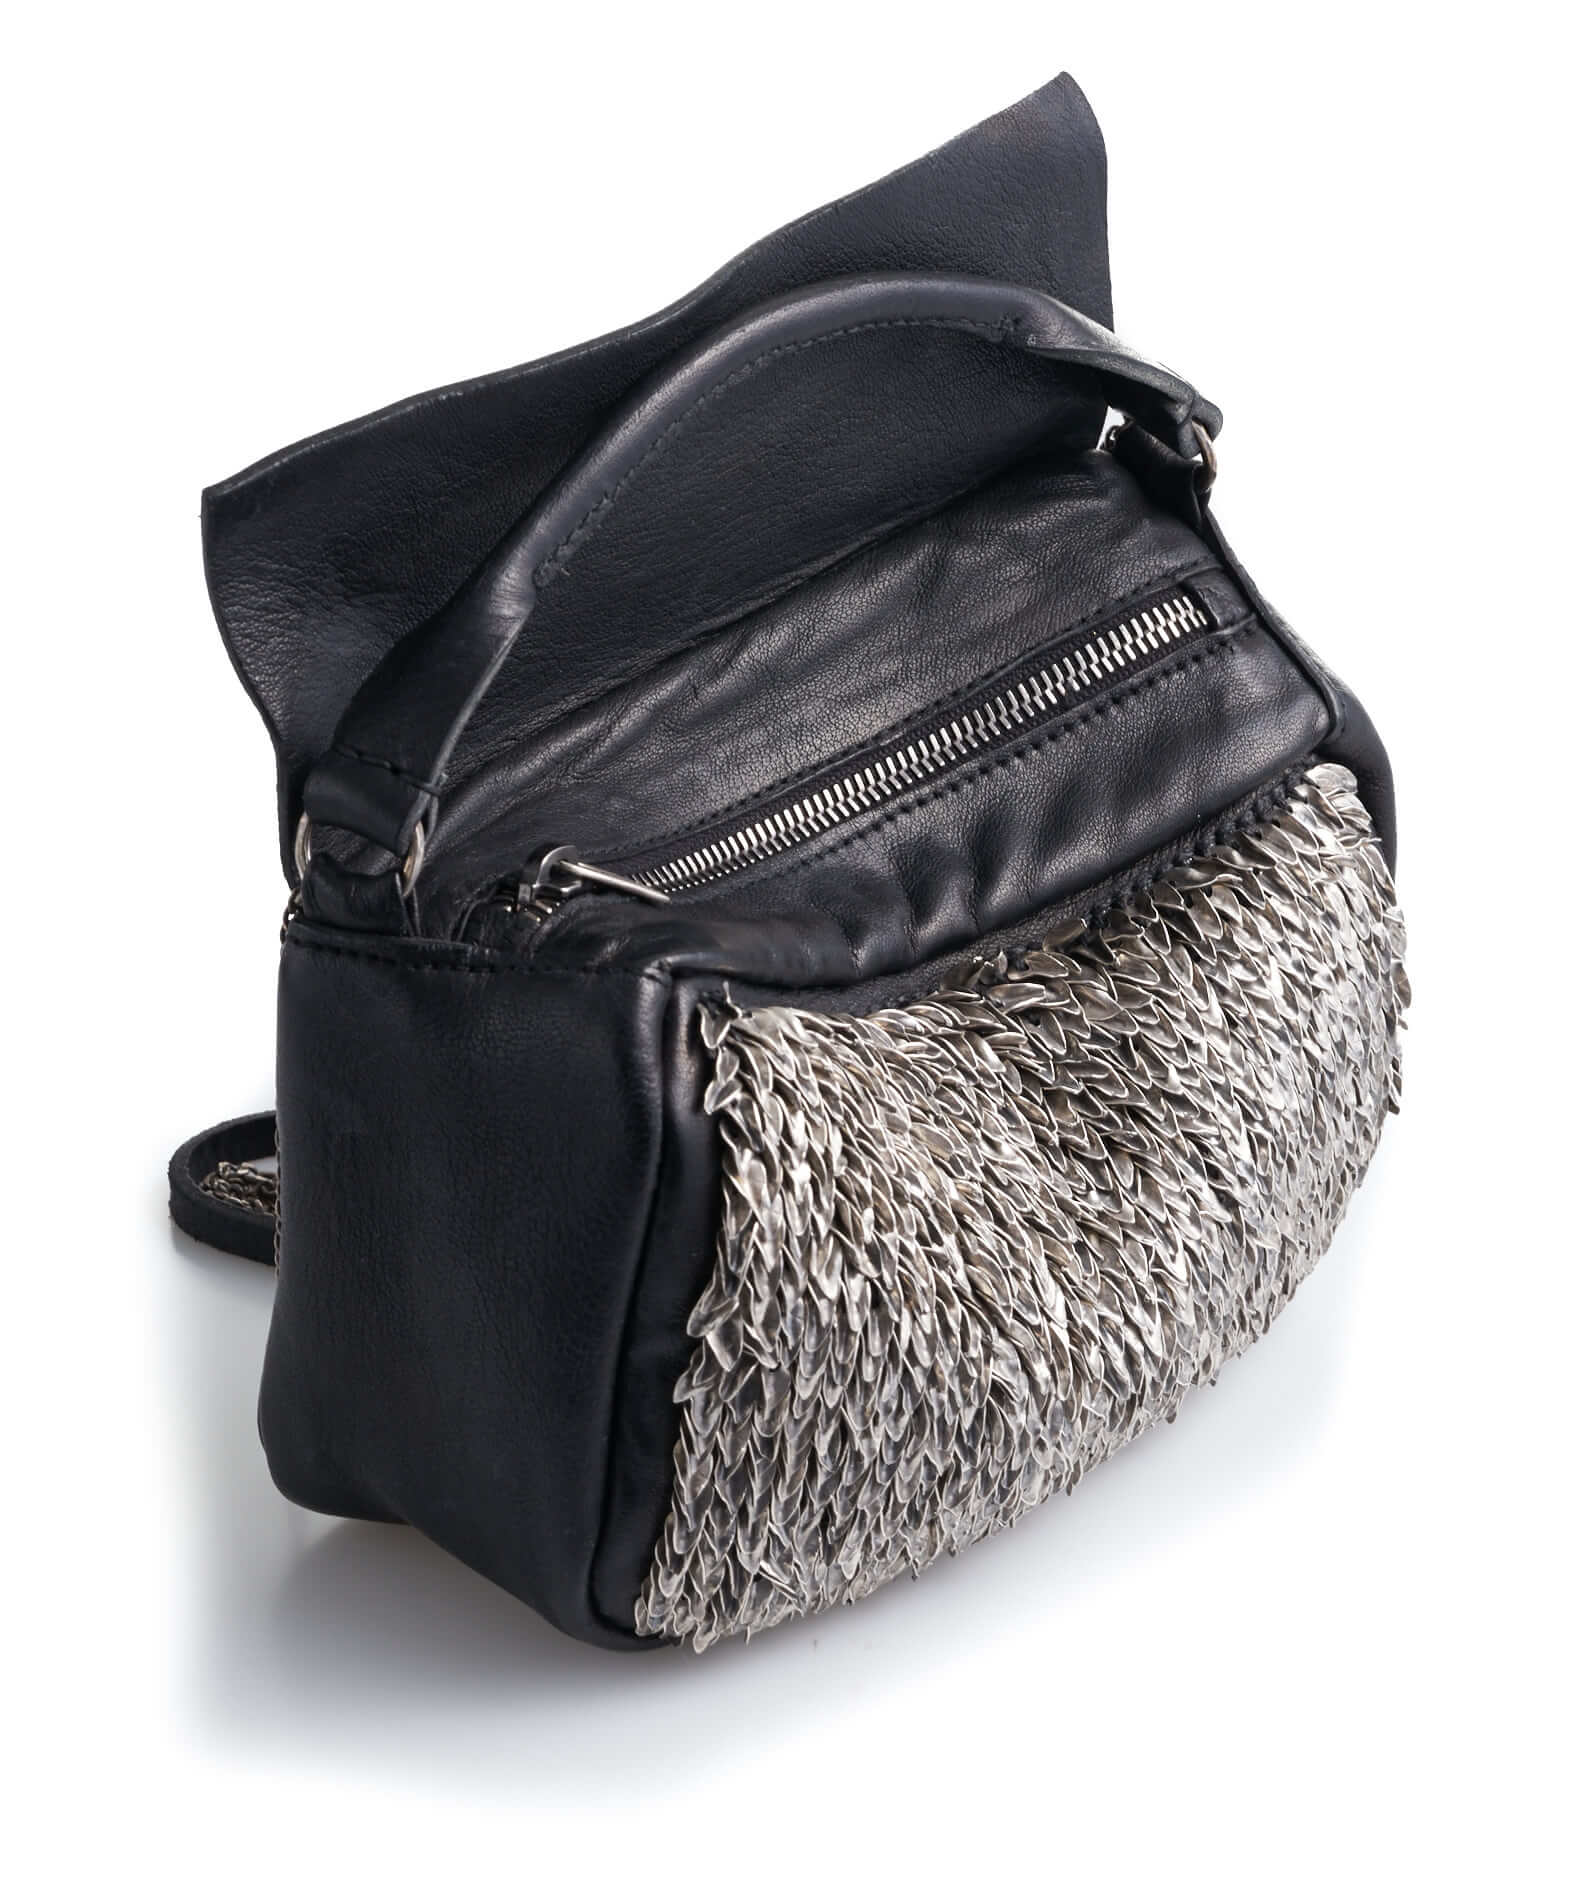 DANIELE BASTA | leather bag - BABA MIGNON FOGLIE side